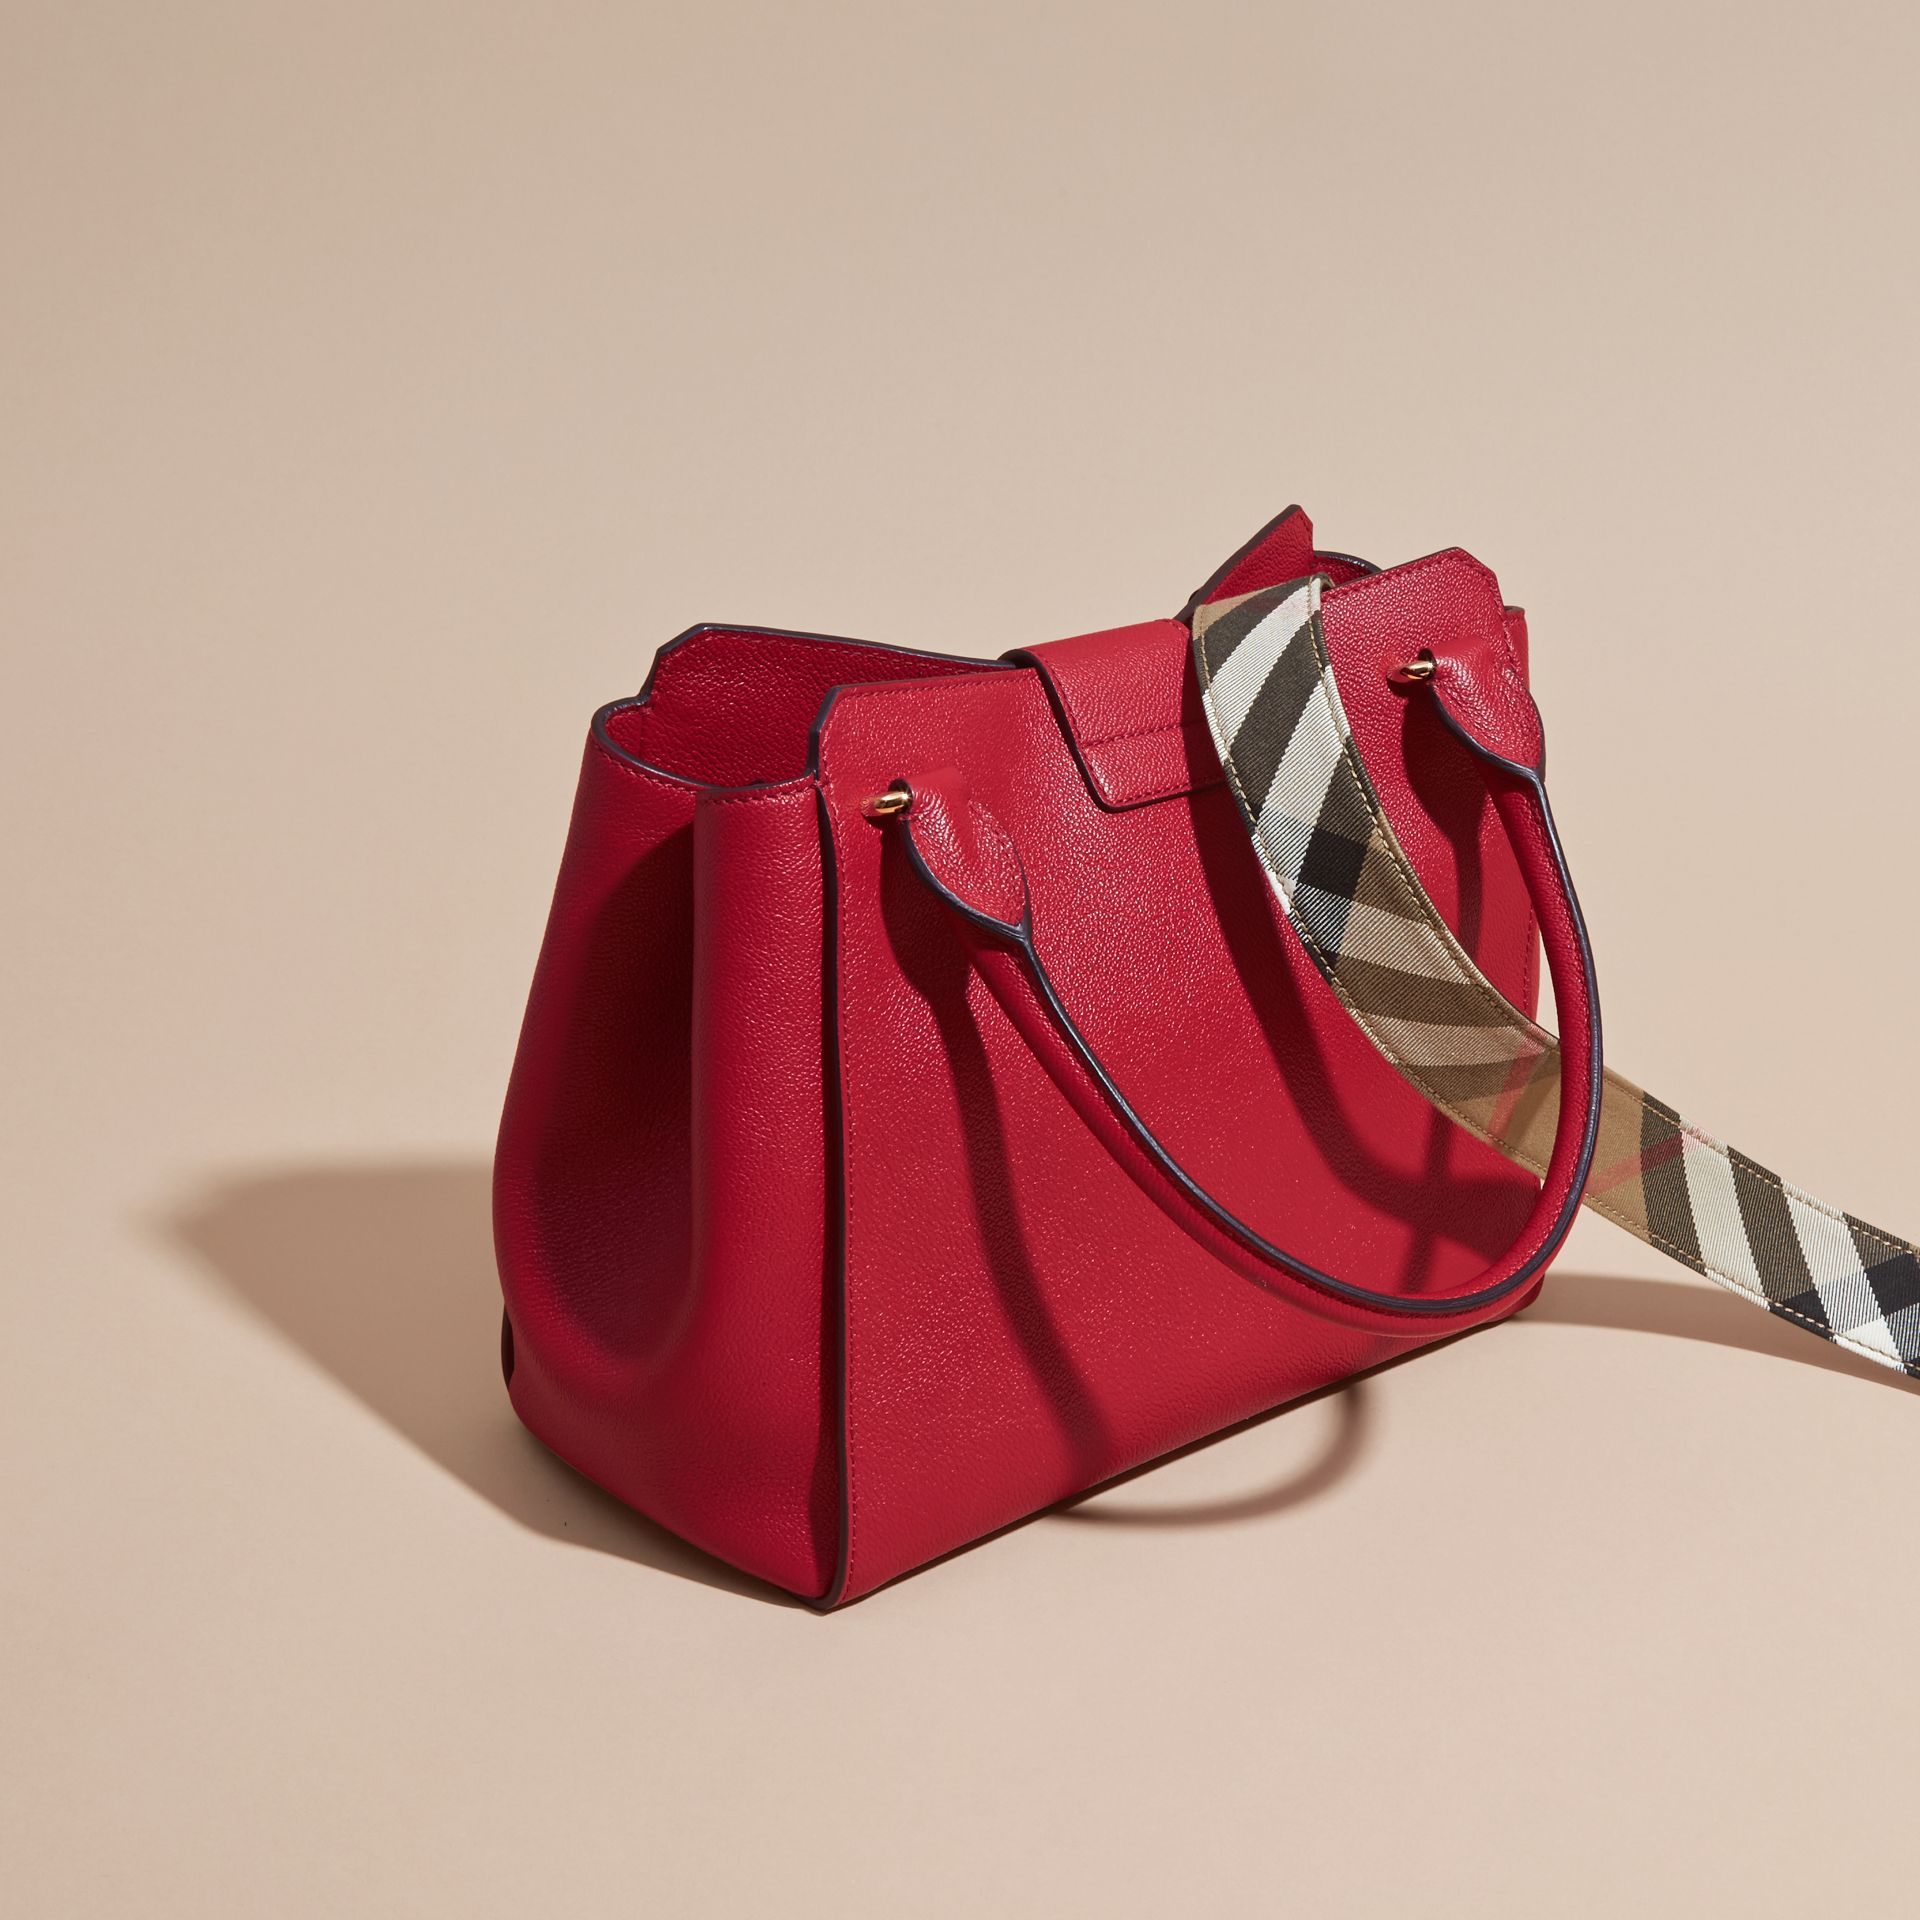 The Medium Buckle Tote in Grainy Leather in Parade Red - Women | Burberry - gallery image 5